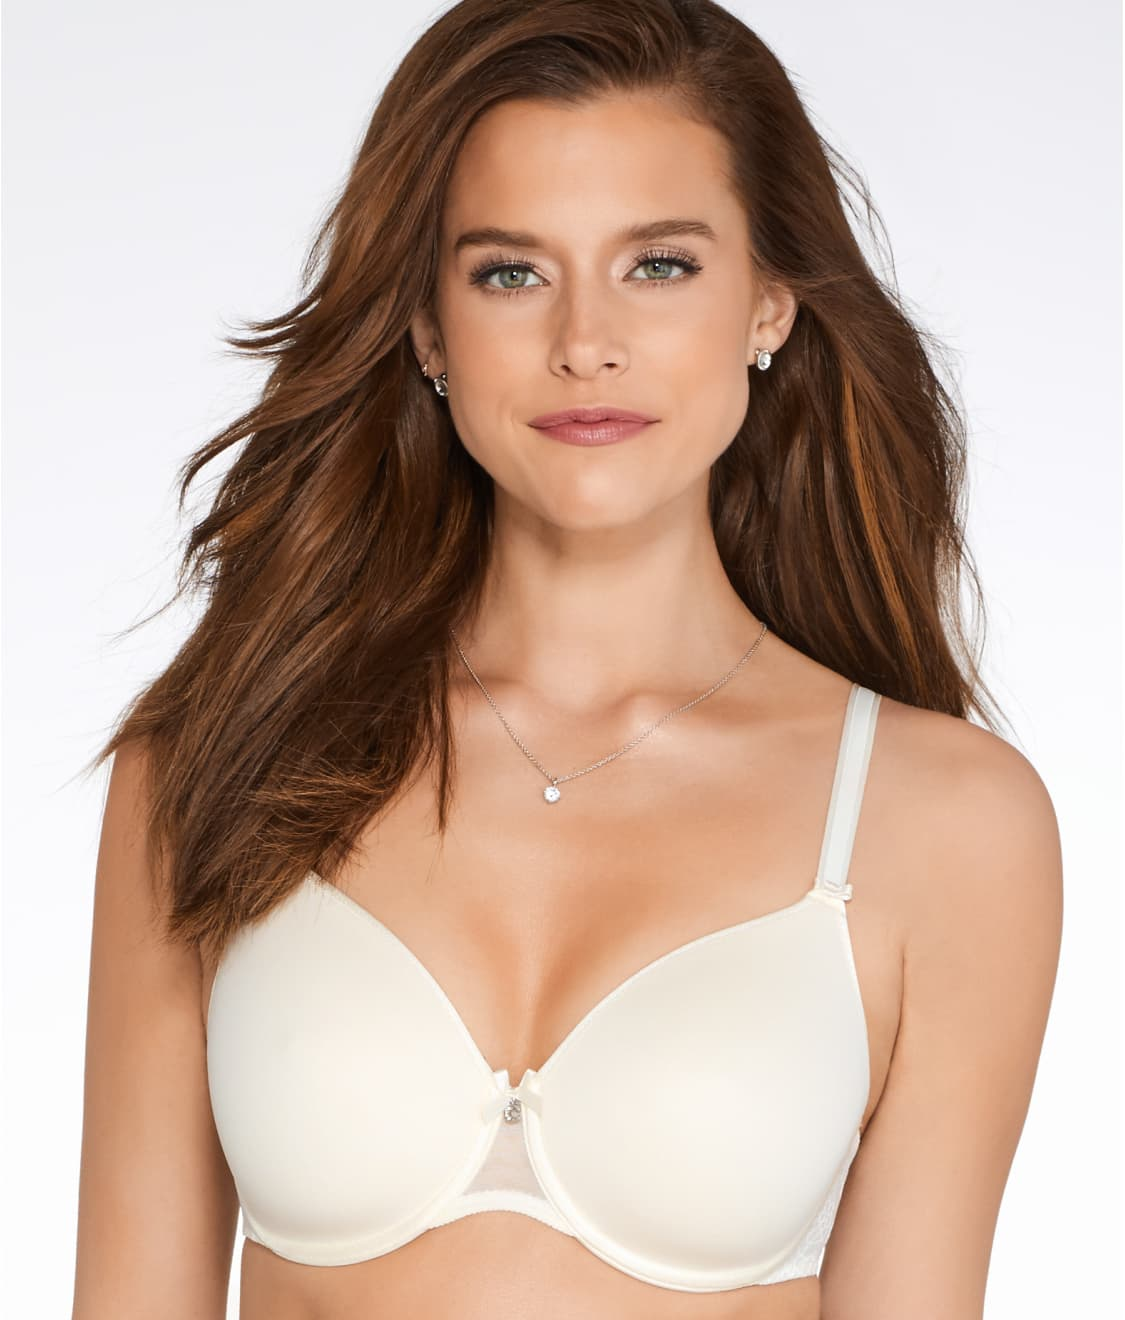 79d0fac5ee See C Magnifique Minimizer T-Shirt Bra in Ivory